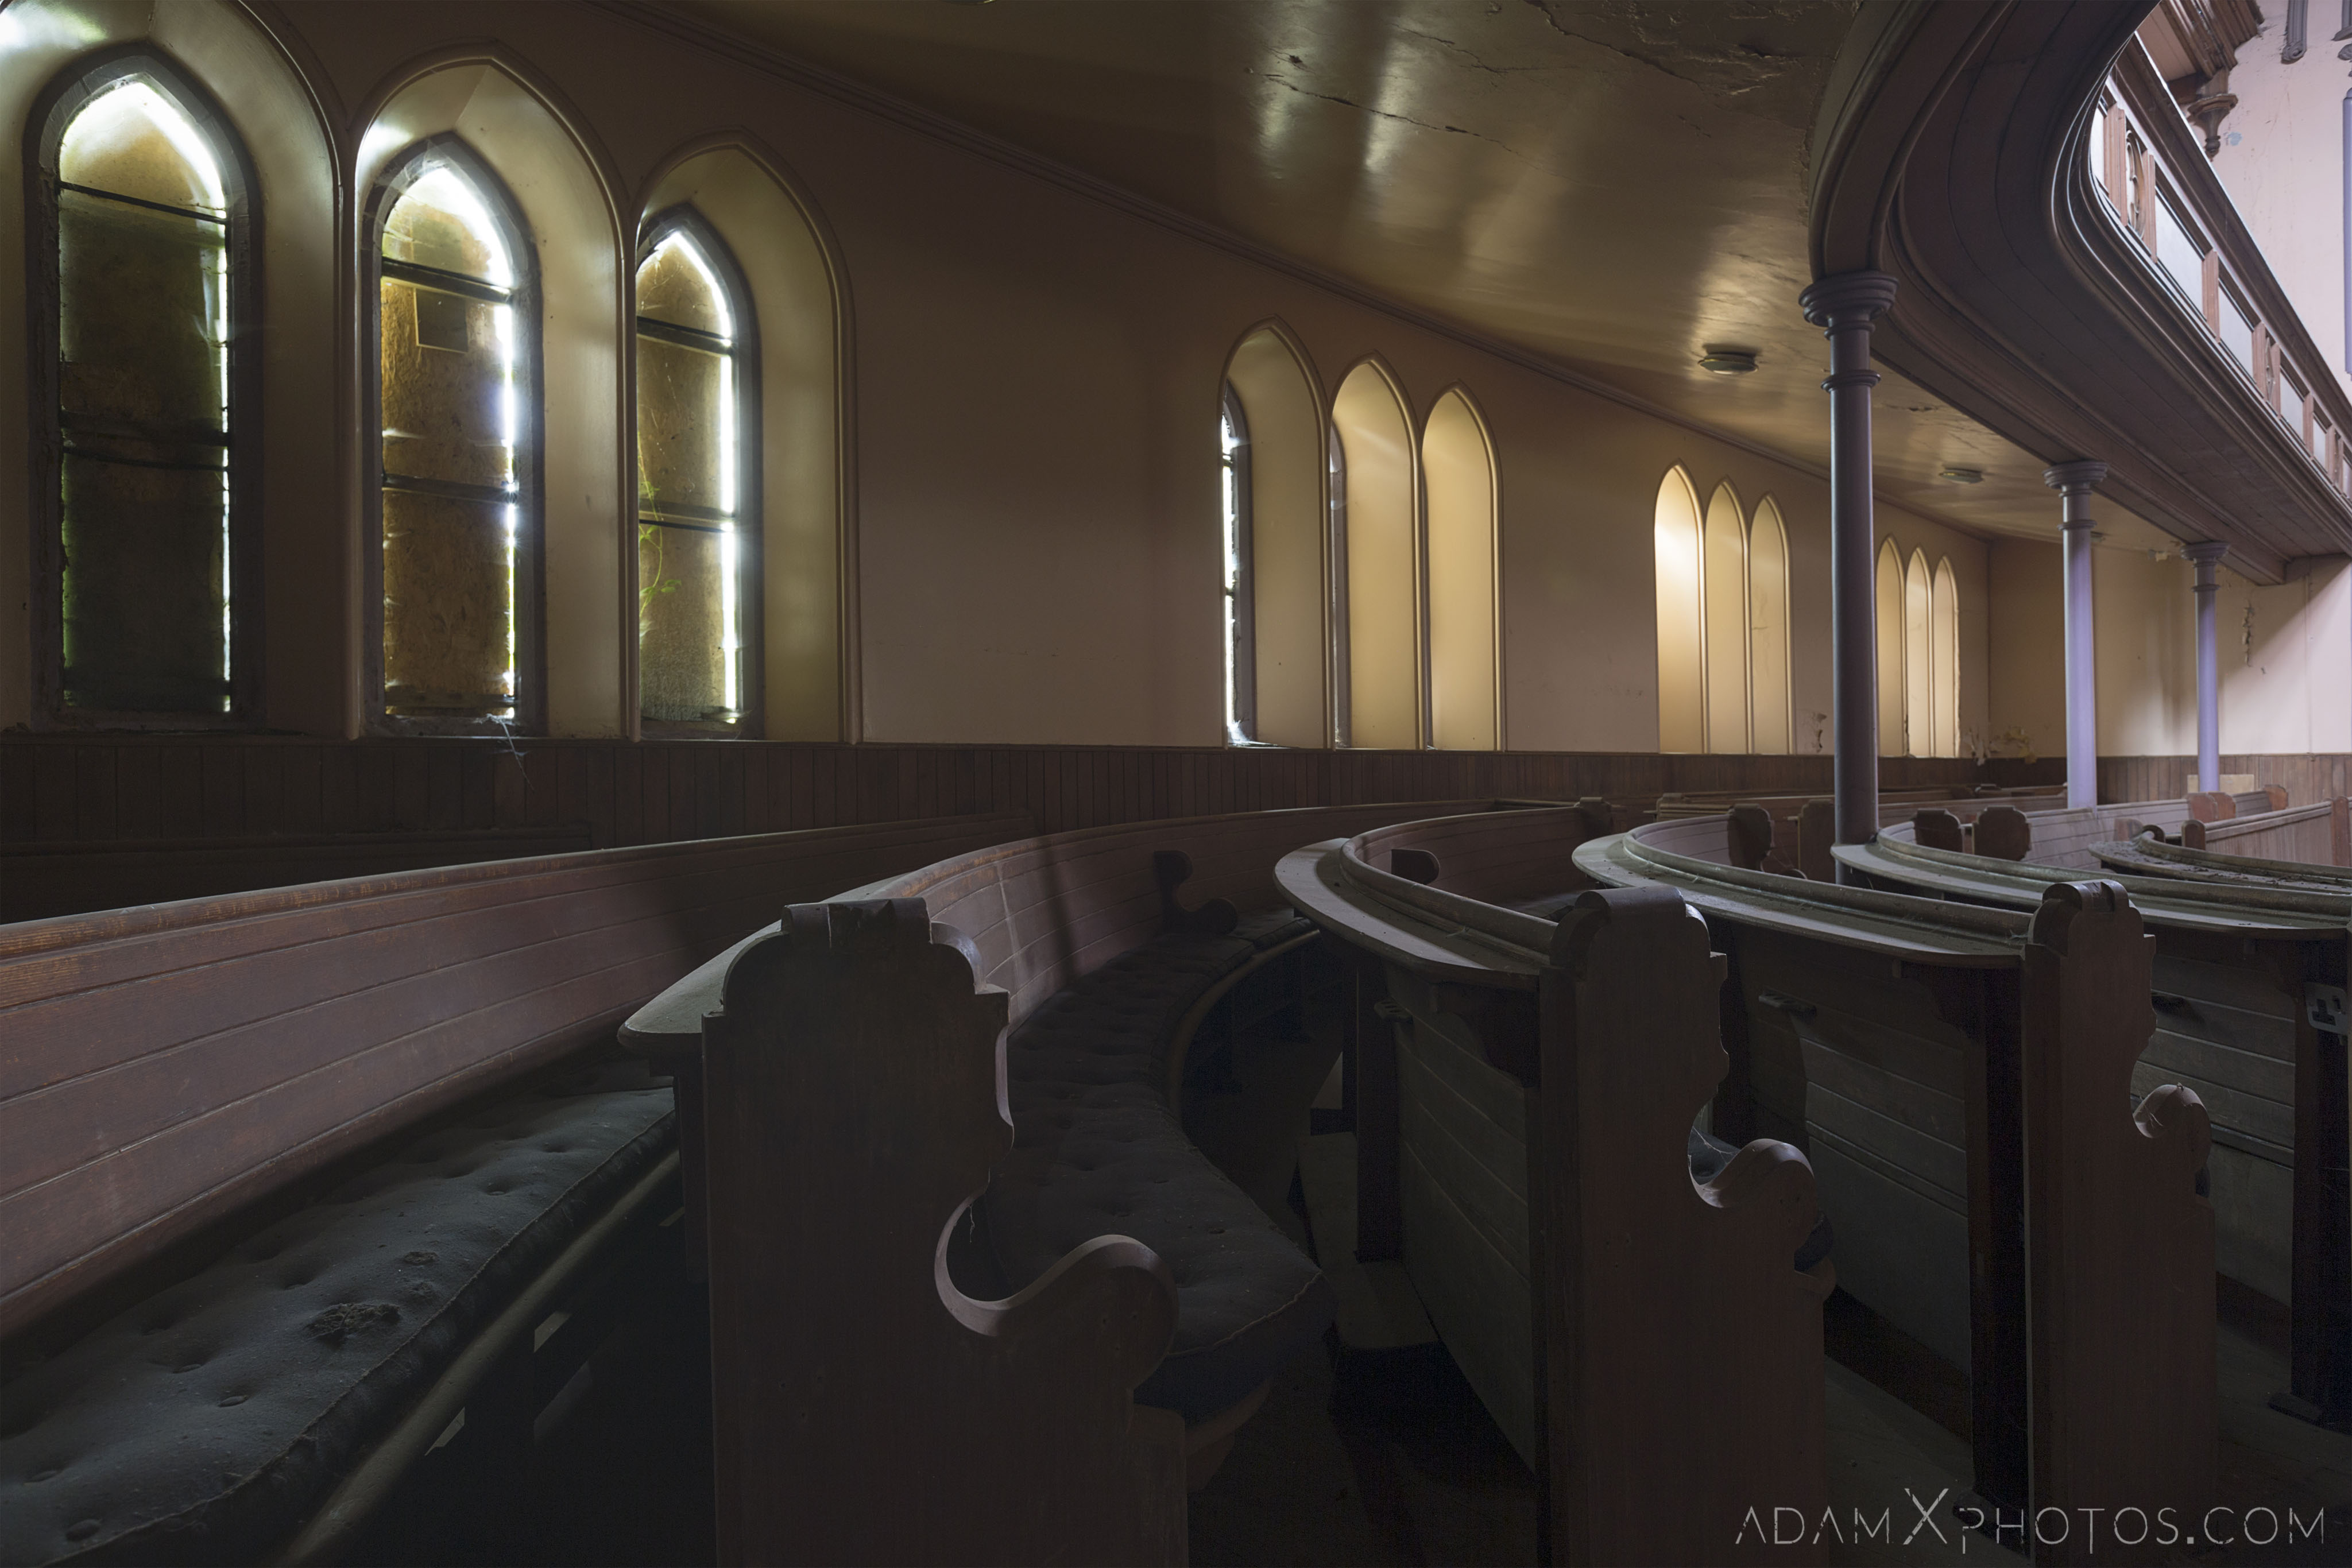 Pews Main Hall stained glass windows wooden balcony pews St Aidan's Church Galashiels Scotland Circle Church Adam X Urbex Urban Exploration Access 2018 Abandoned decay ruins lost forgotten derelict location creepy haunting eerie